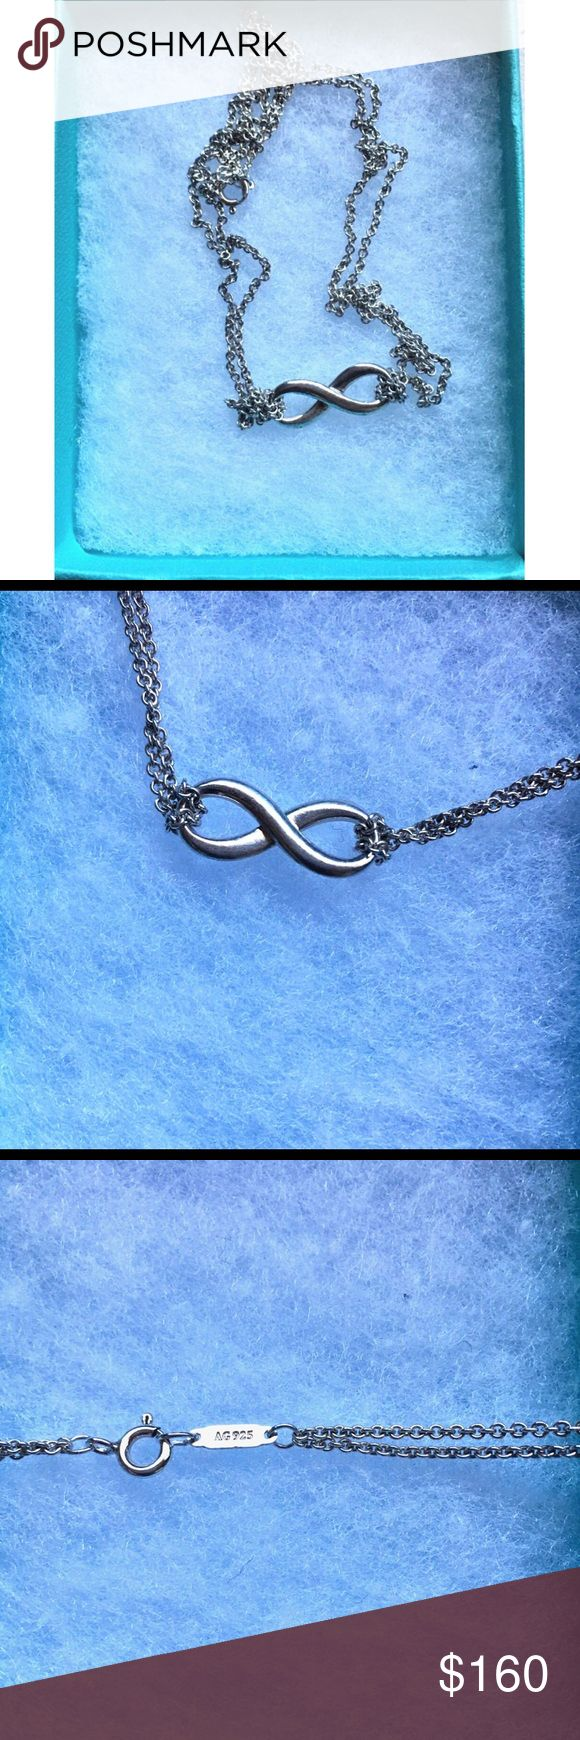 """💎TIFFANY INFINITY PENDANT💙 Tiffany & Co Infinity Pendant. 18"""" chain. Sterling silver. Tiffany & Co. Jewelry Necklaces"""